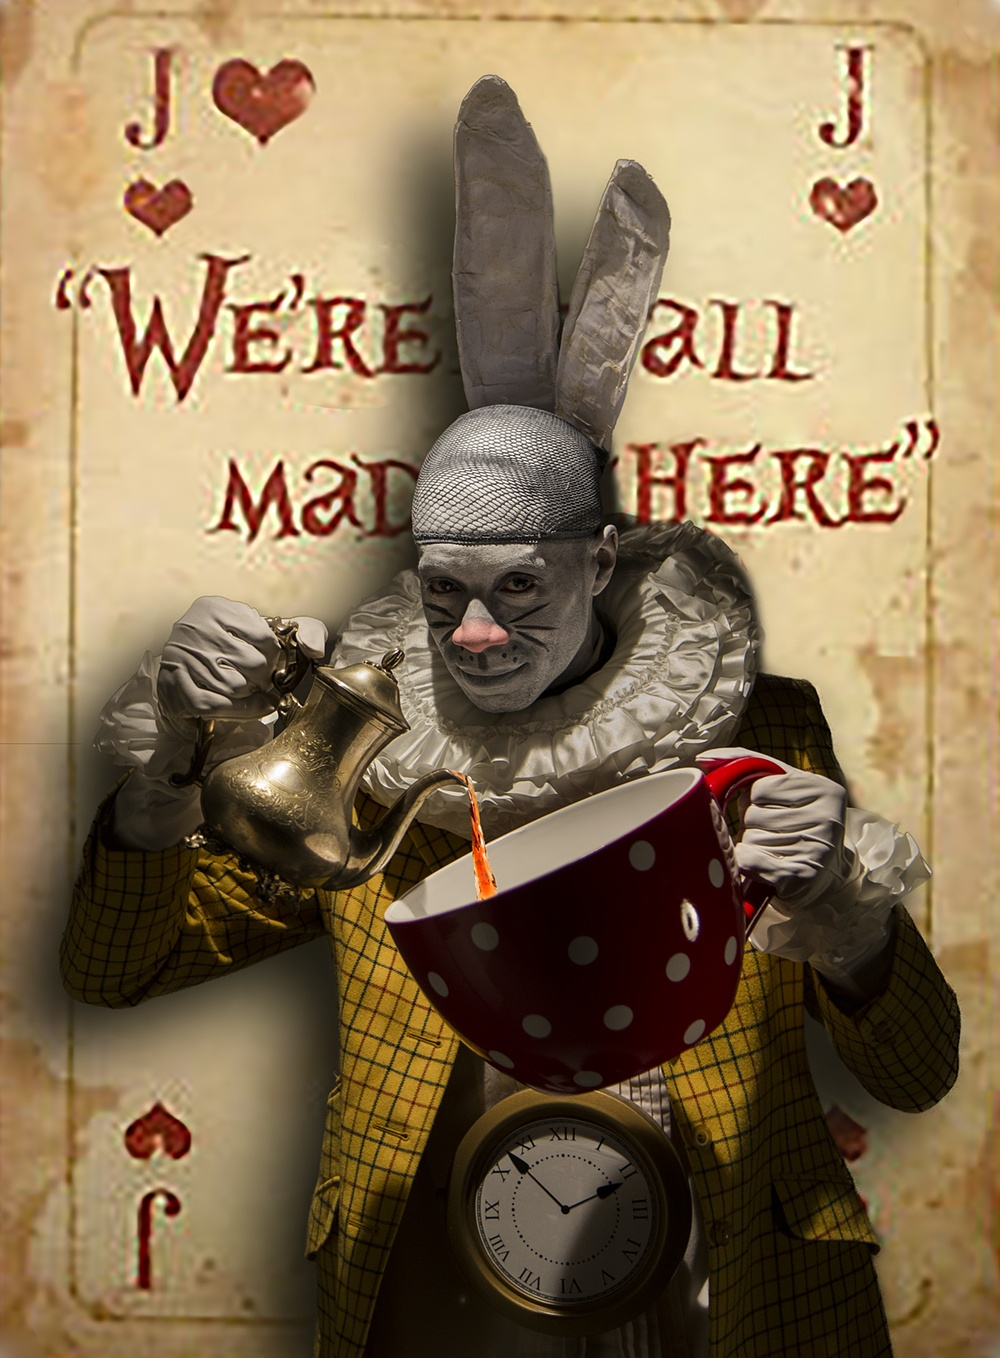 We're all mad here by metallipaul